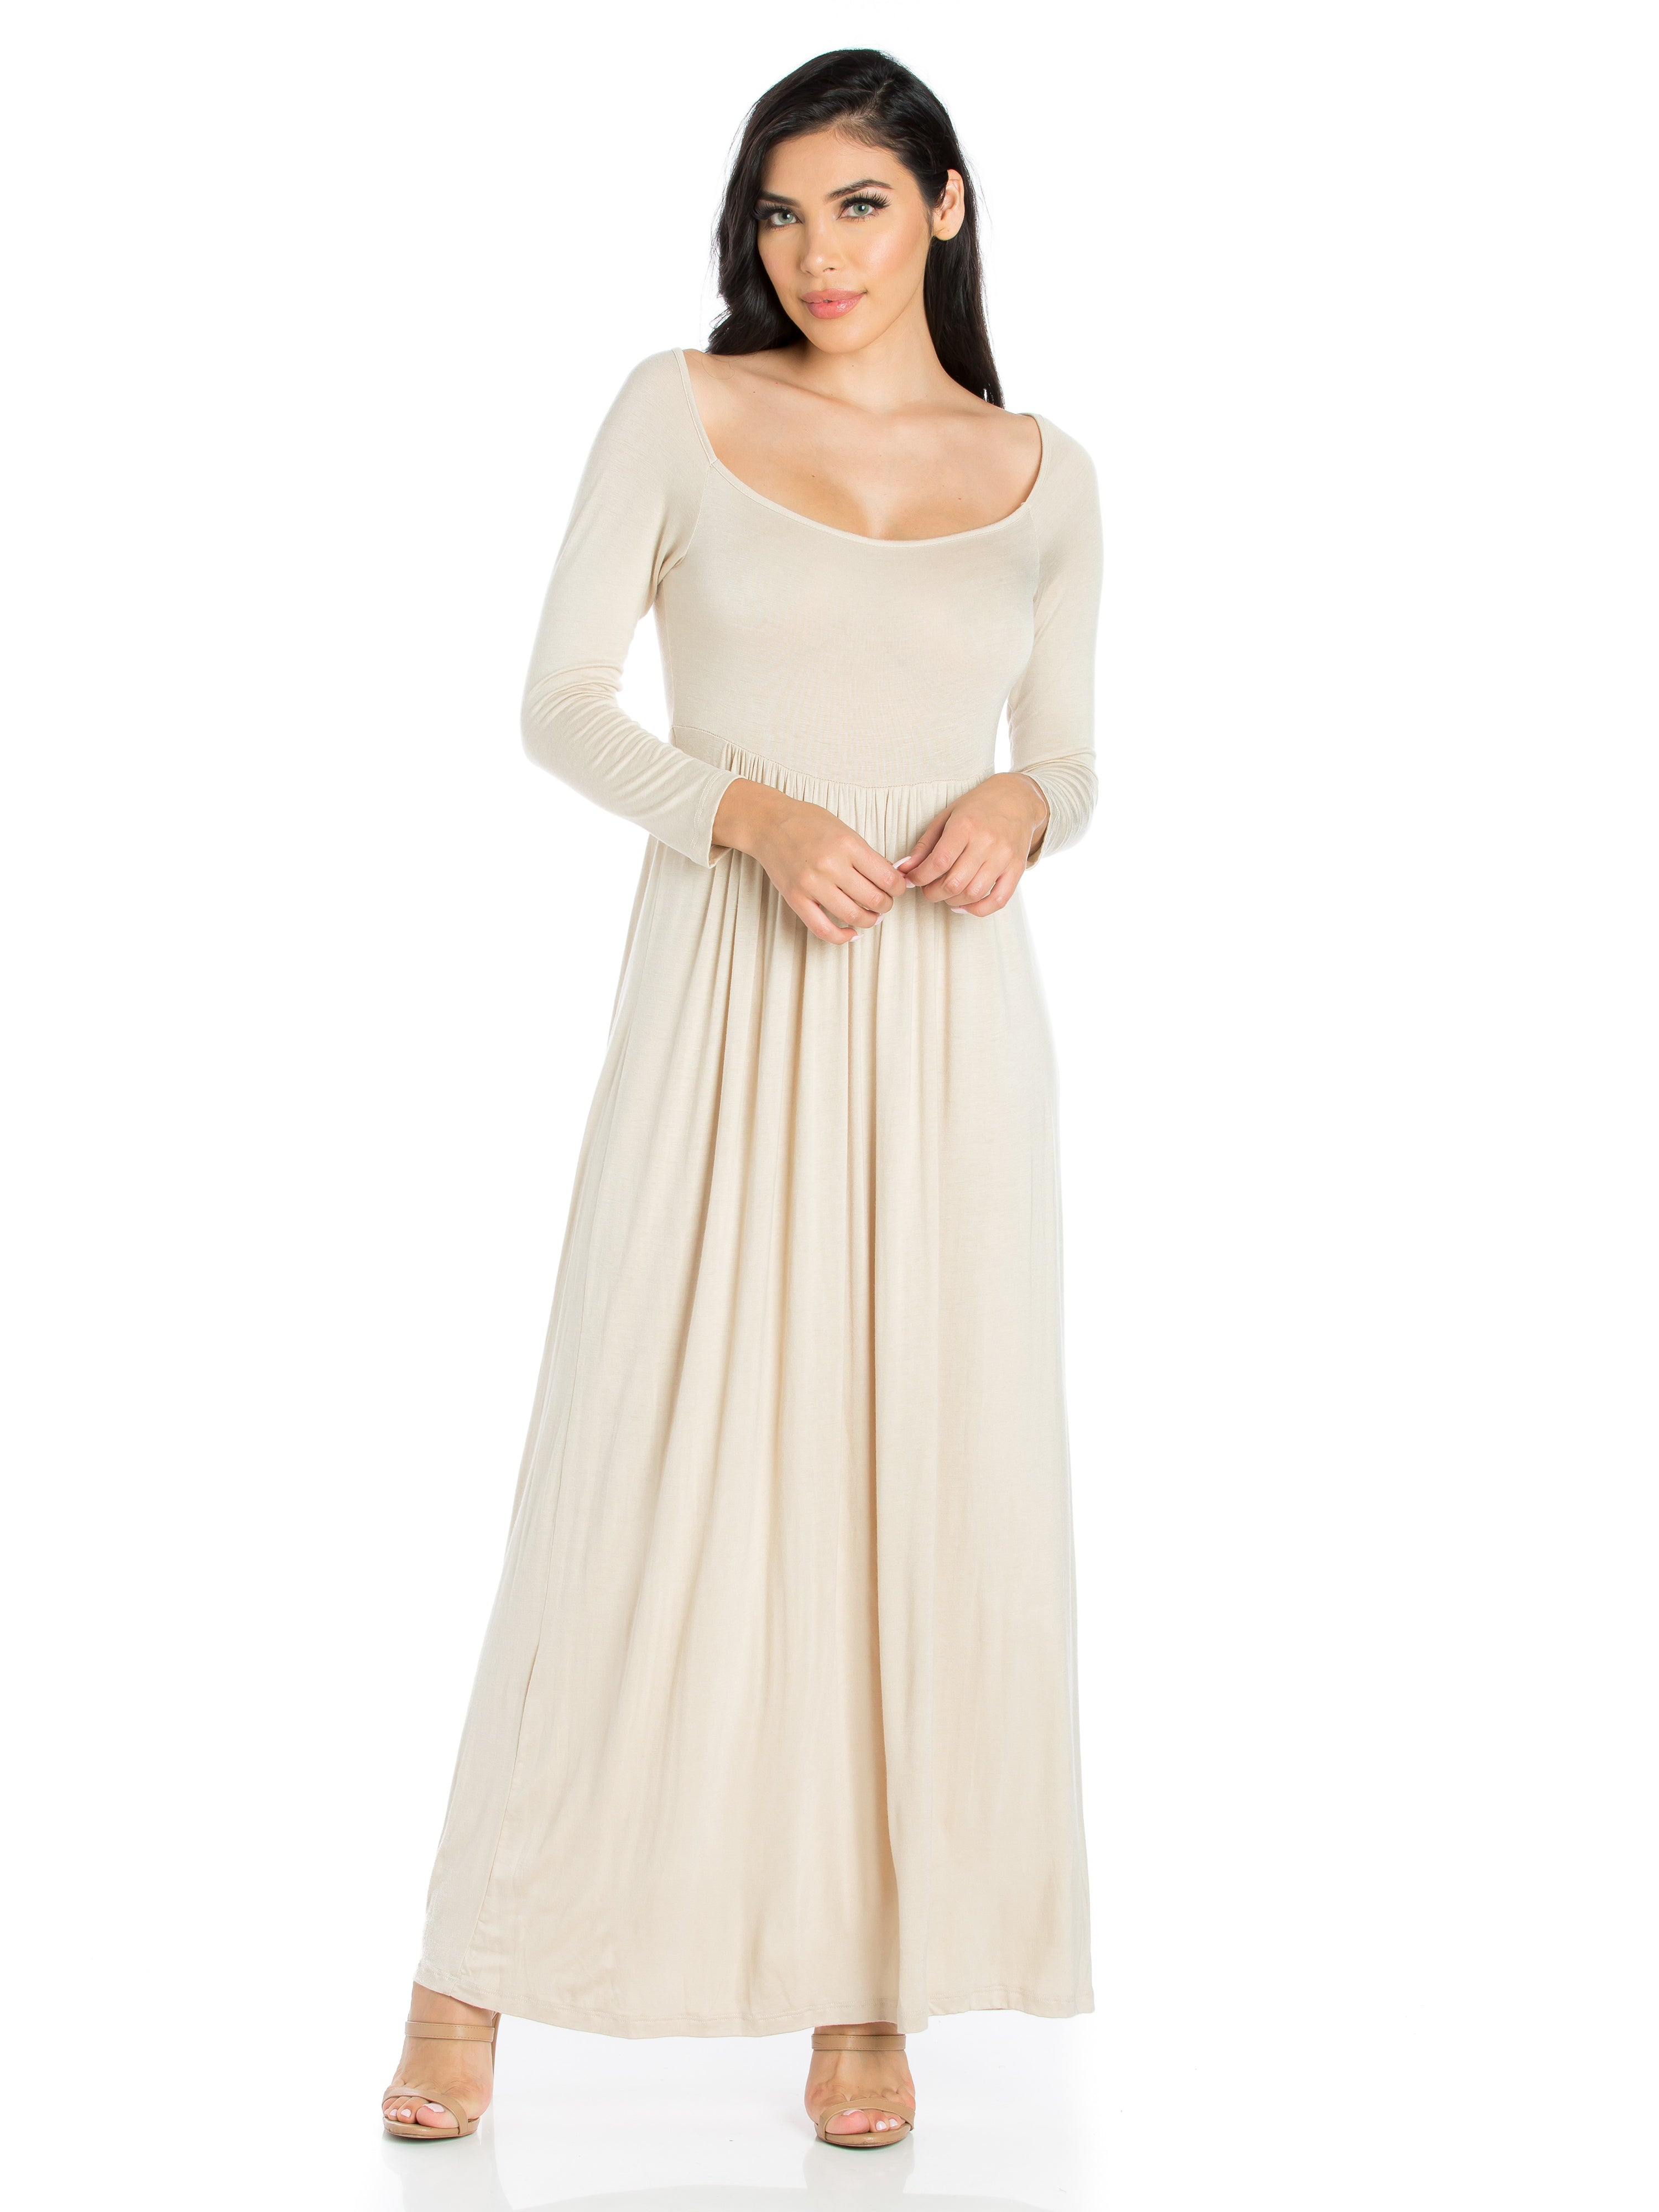 24seven Comfort Apparel Empire Waist Long Sleeve Casual Maxi Dress